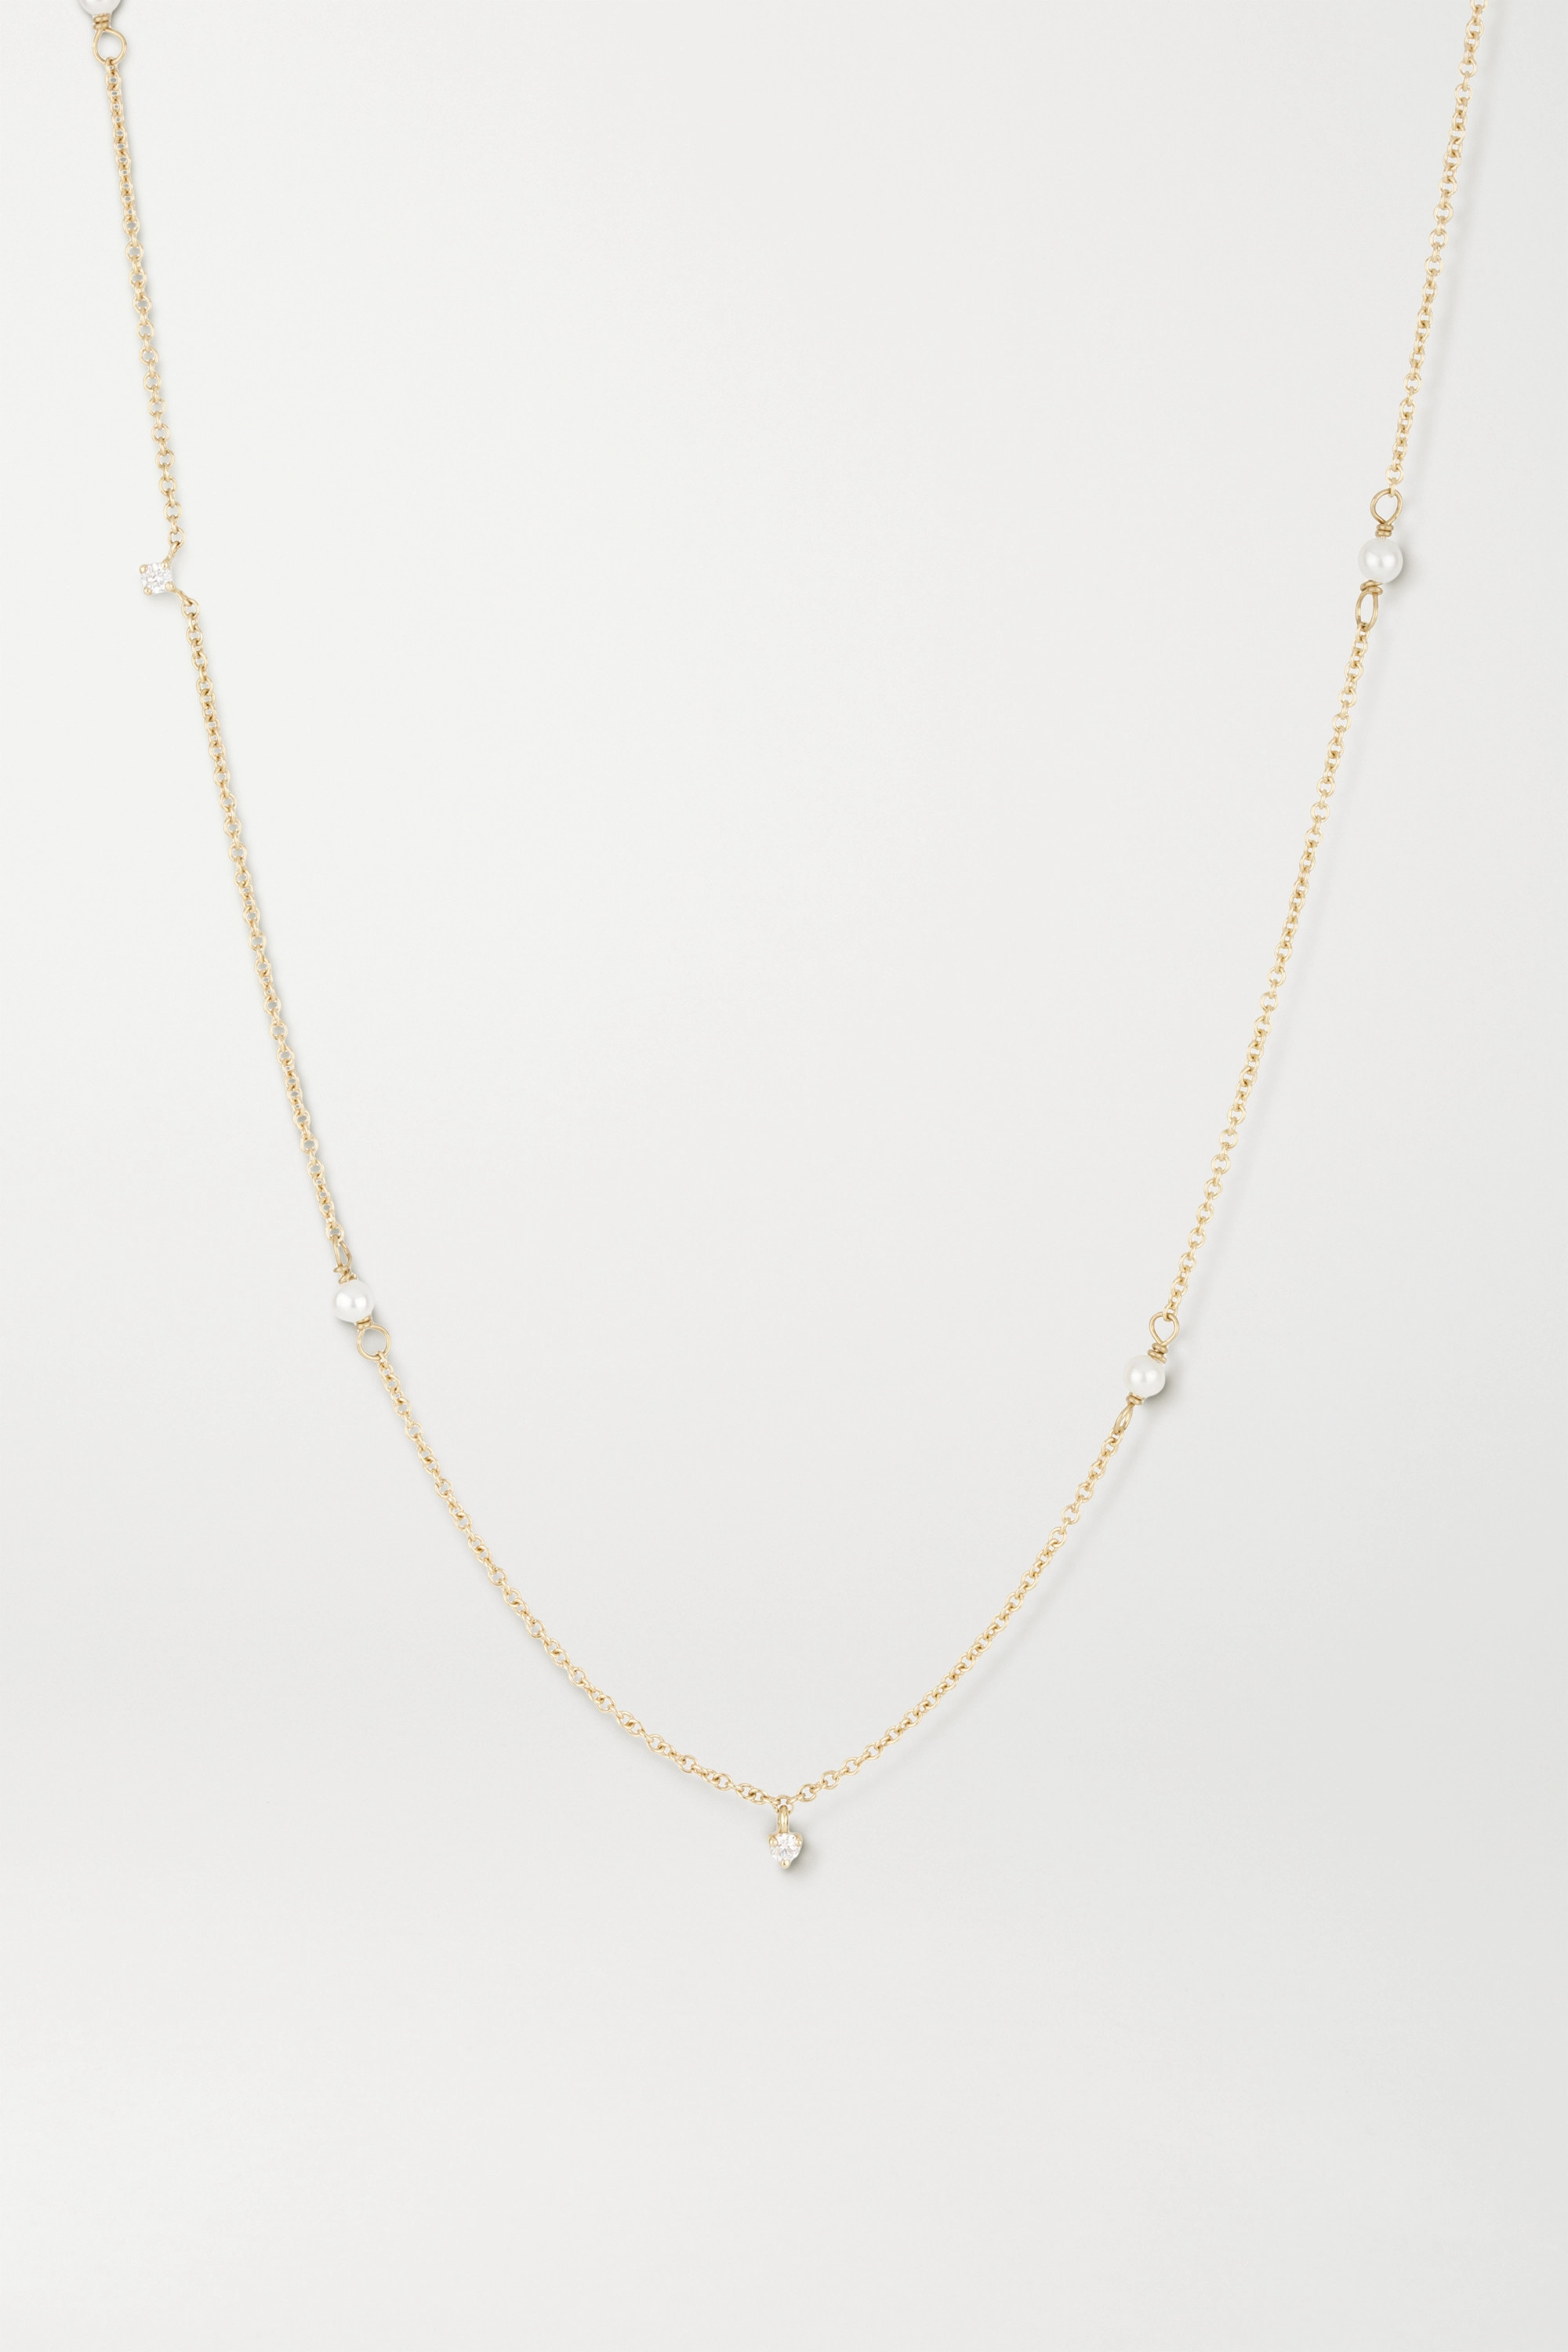 STONE AND STRAND 14-karat gold, diamond and pearl necklace